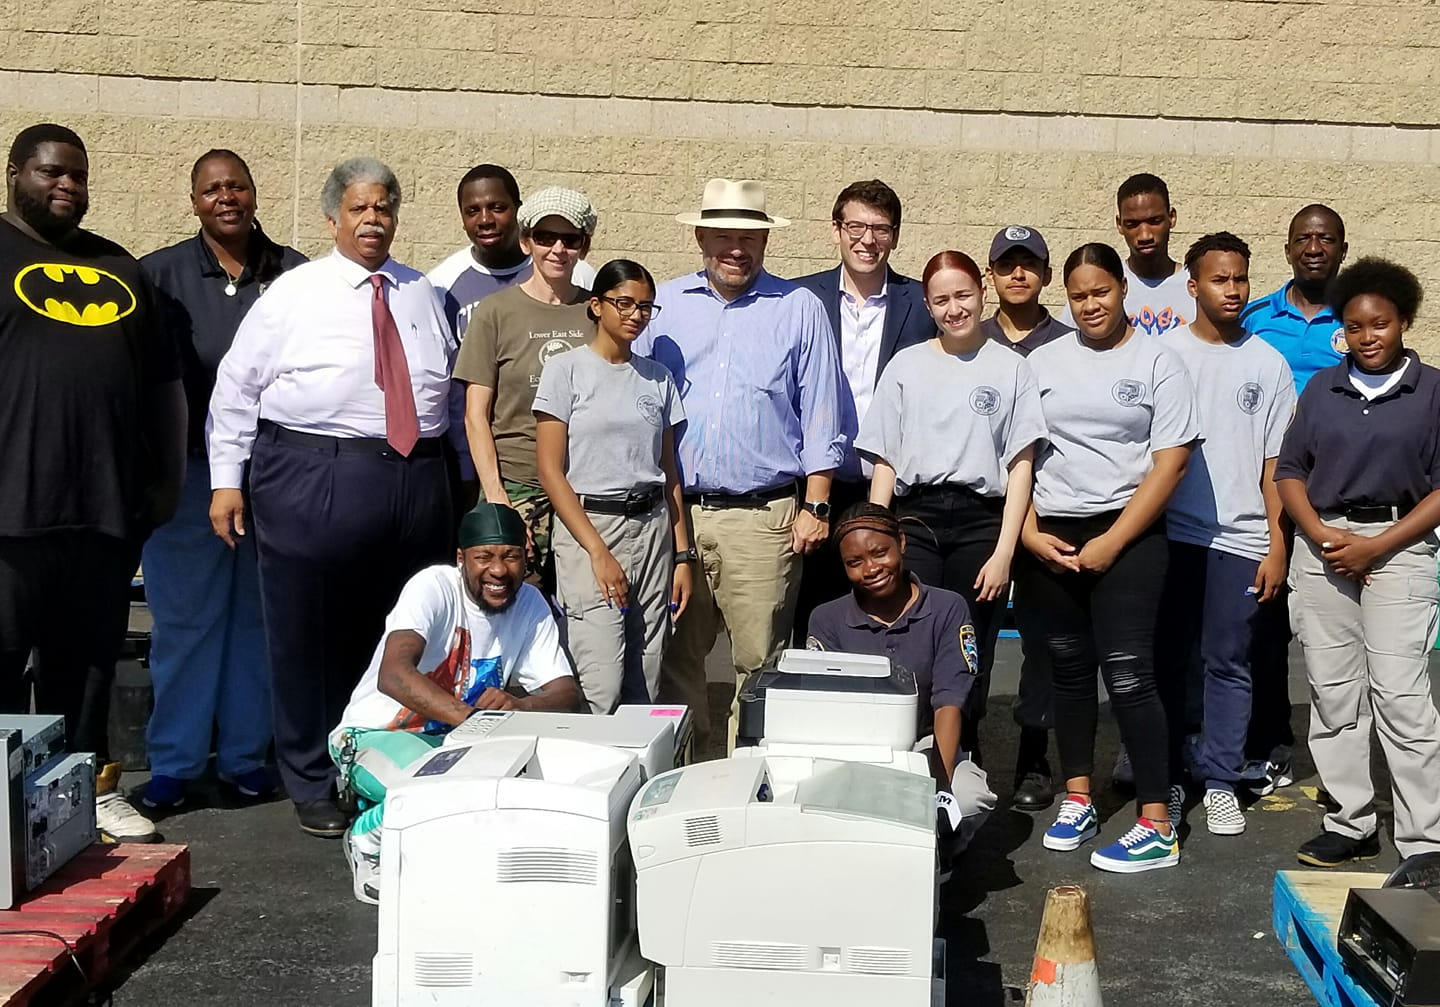 Assemblymember Rosenthal collaborates with Senator Leroy Comrie and Council member Rory Lancman to provide a cost-free Electronic Waste Recycling Event in Briarwood.